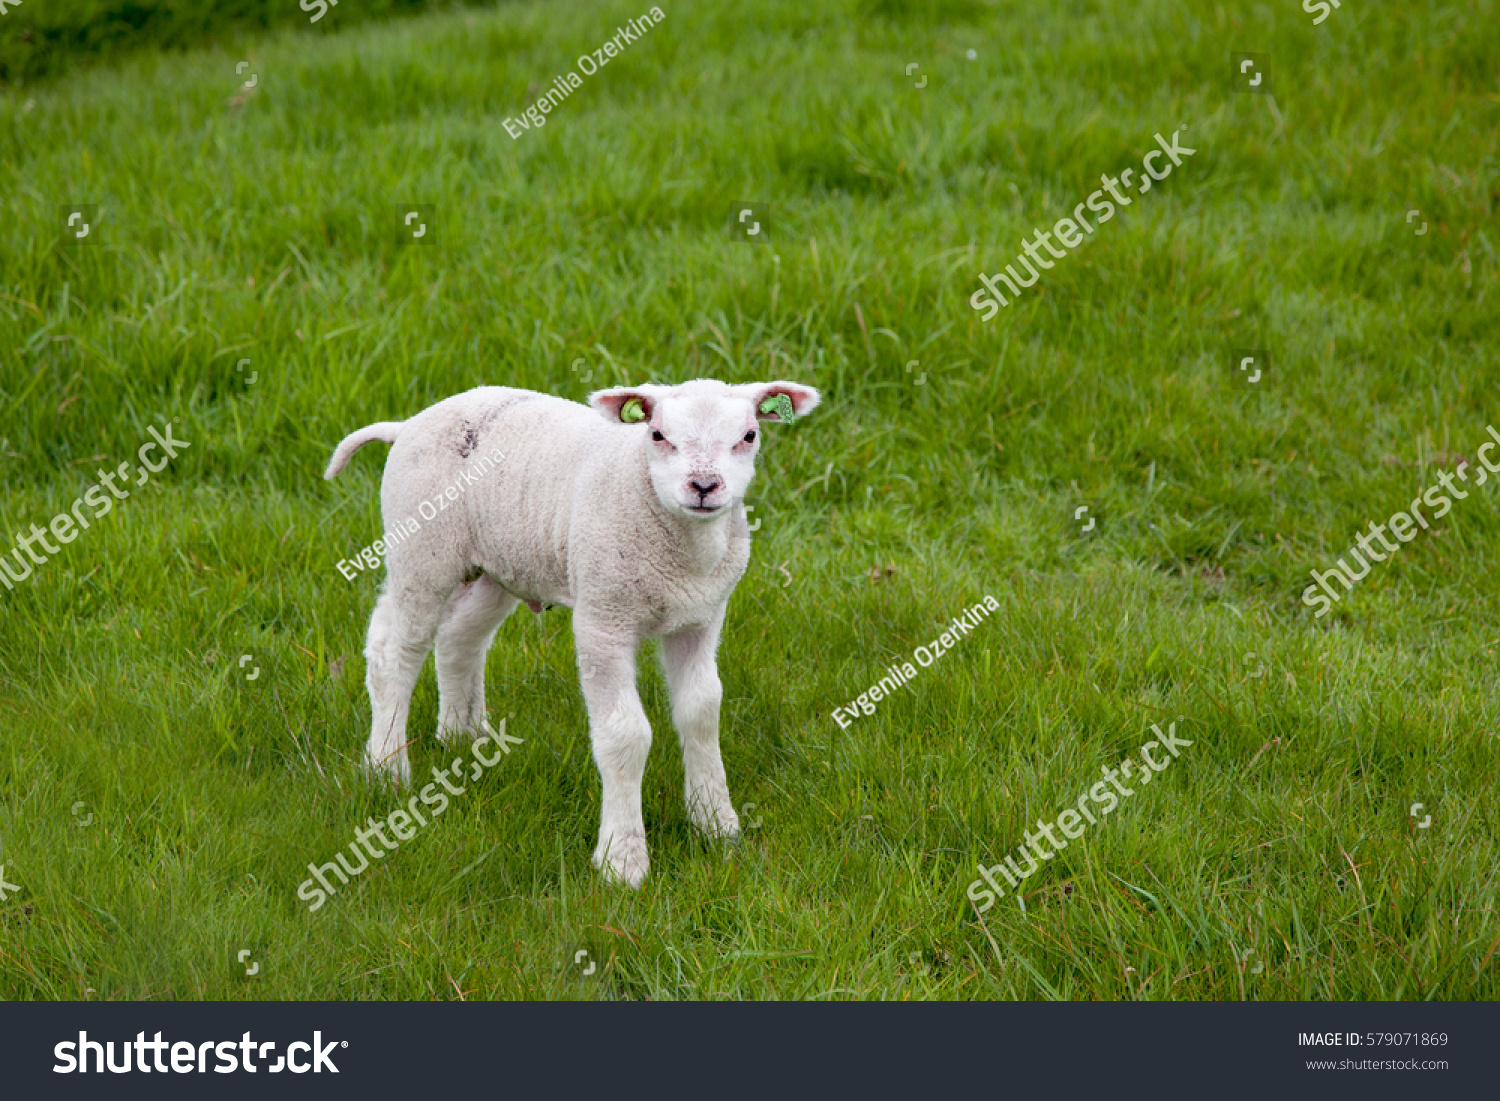 stock-photo-a-lamb-stands-on-green-grass